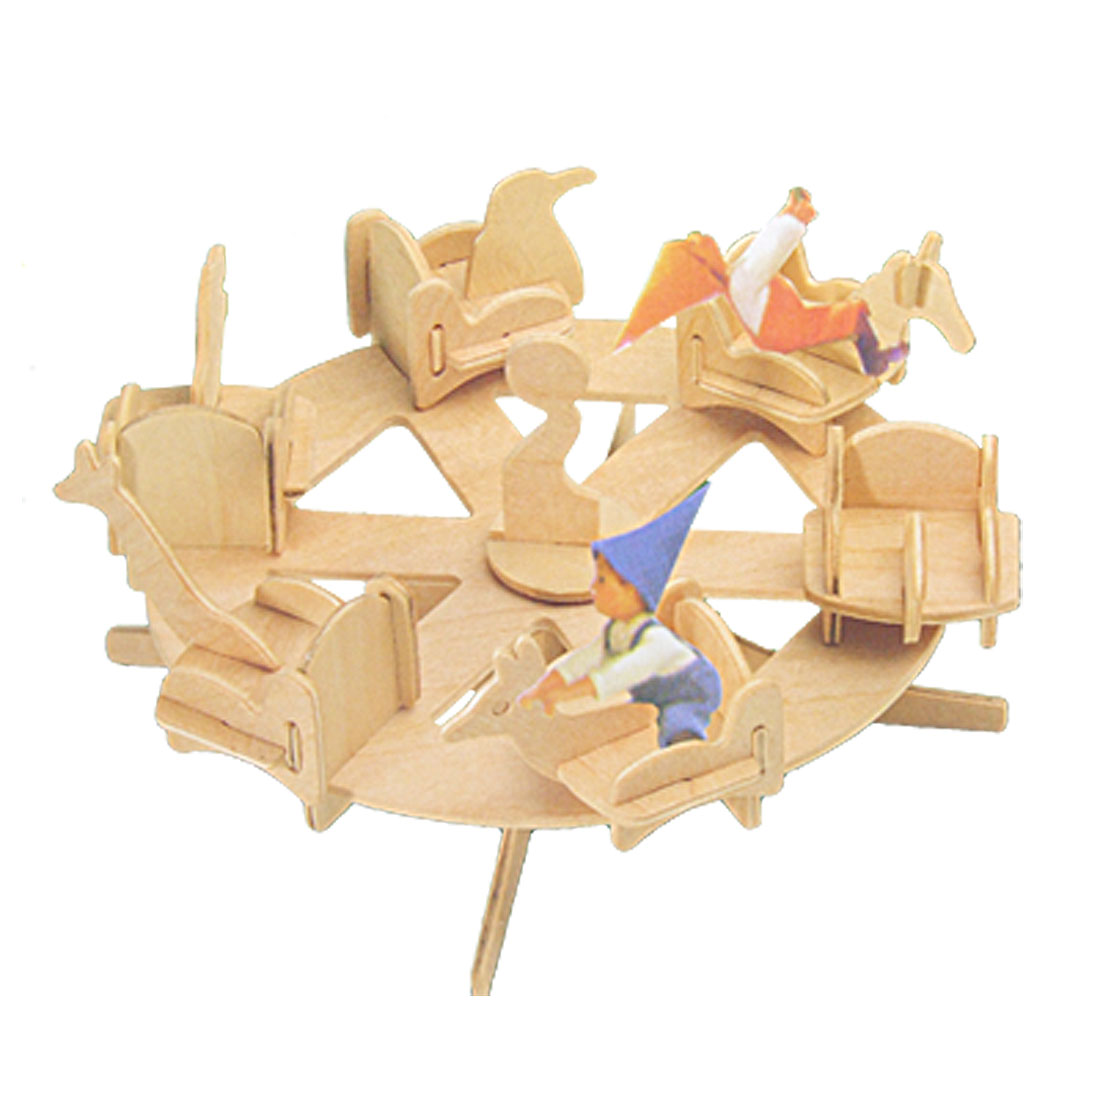 Wooden Roundabout Tumtable DIY Puzzle Toy for